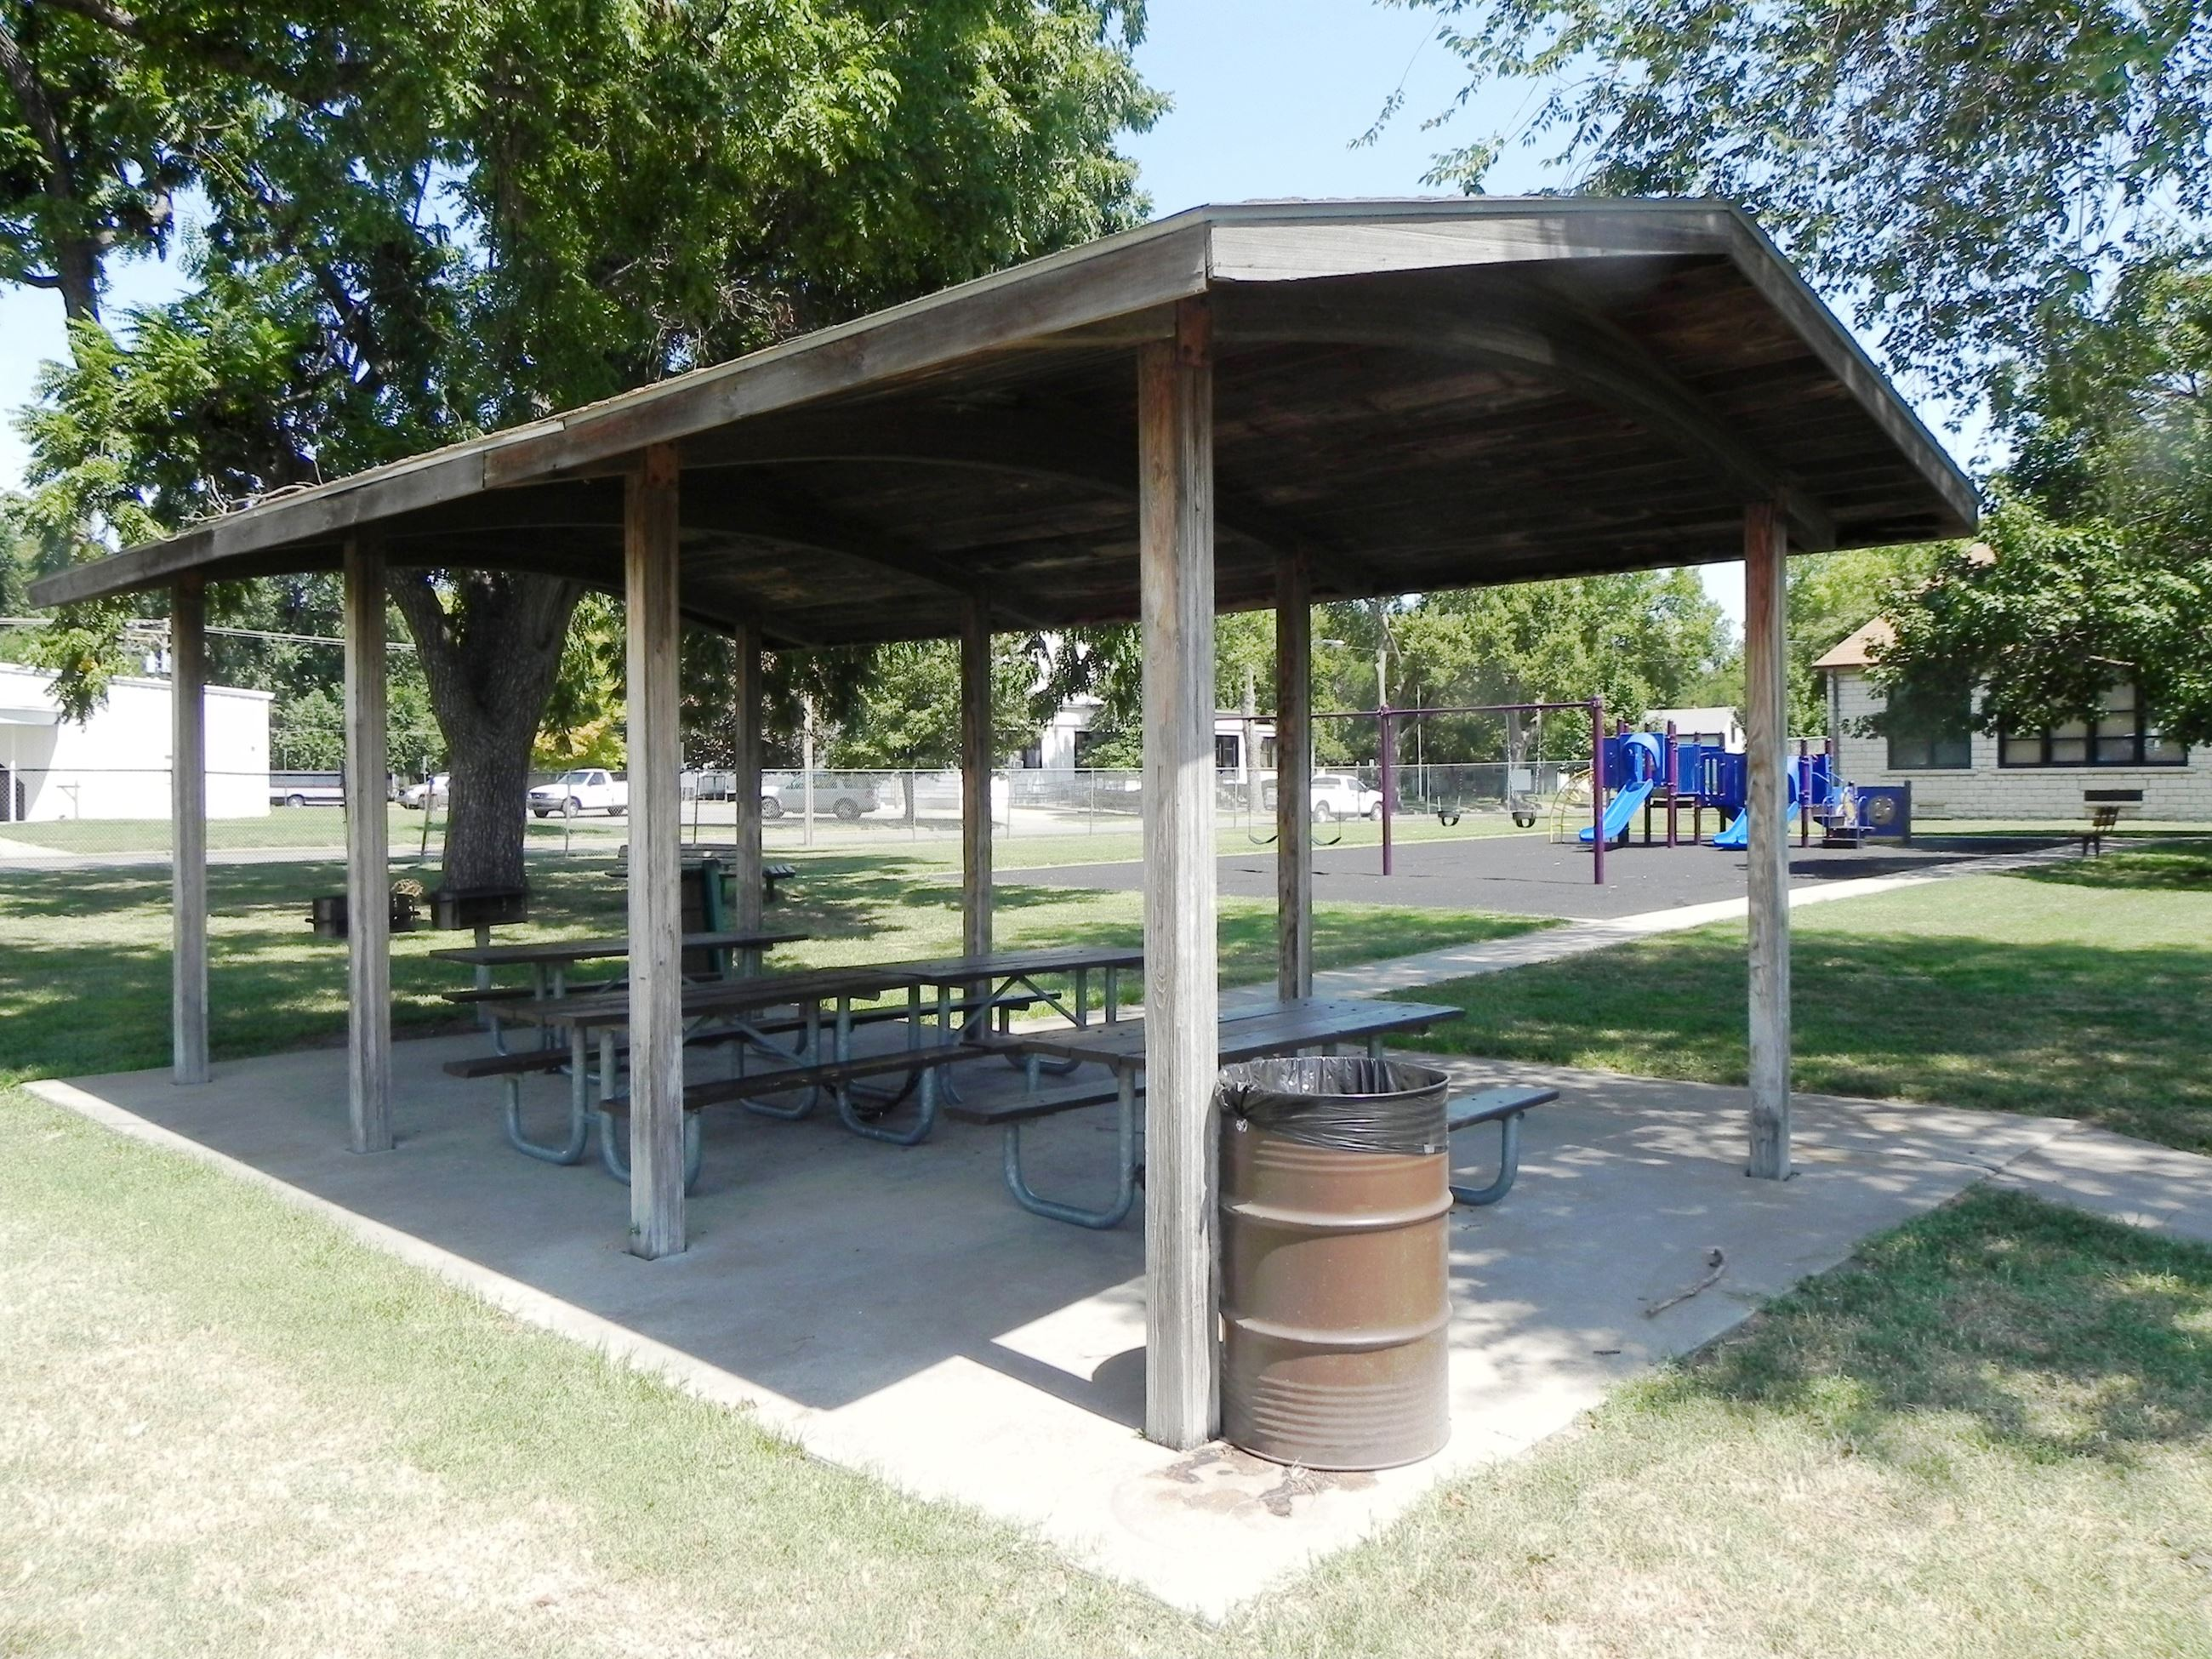 A shelter in Douglass Park